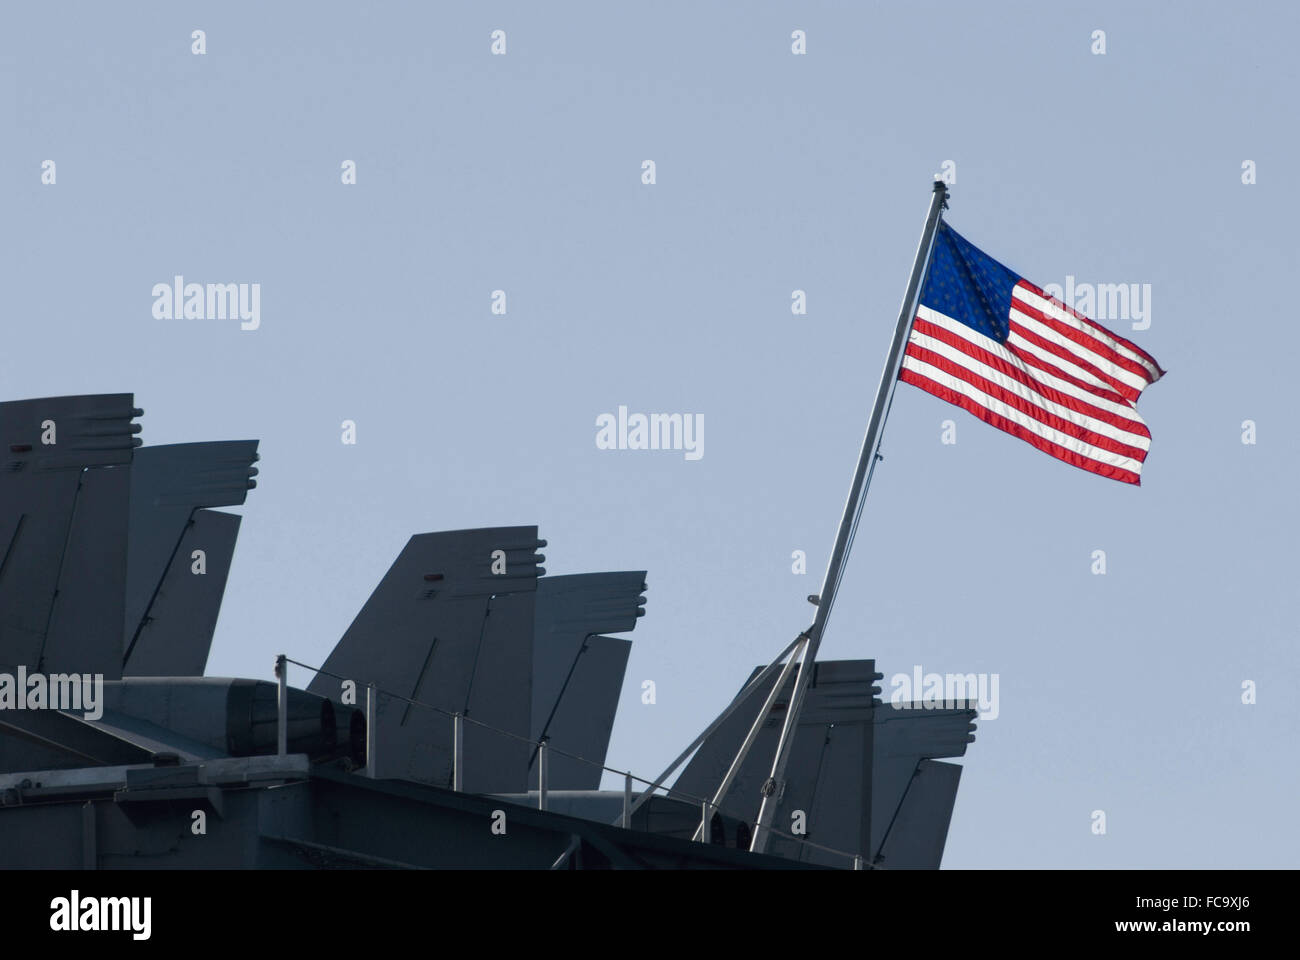 US NAVY - Stock Image